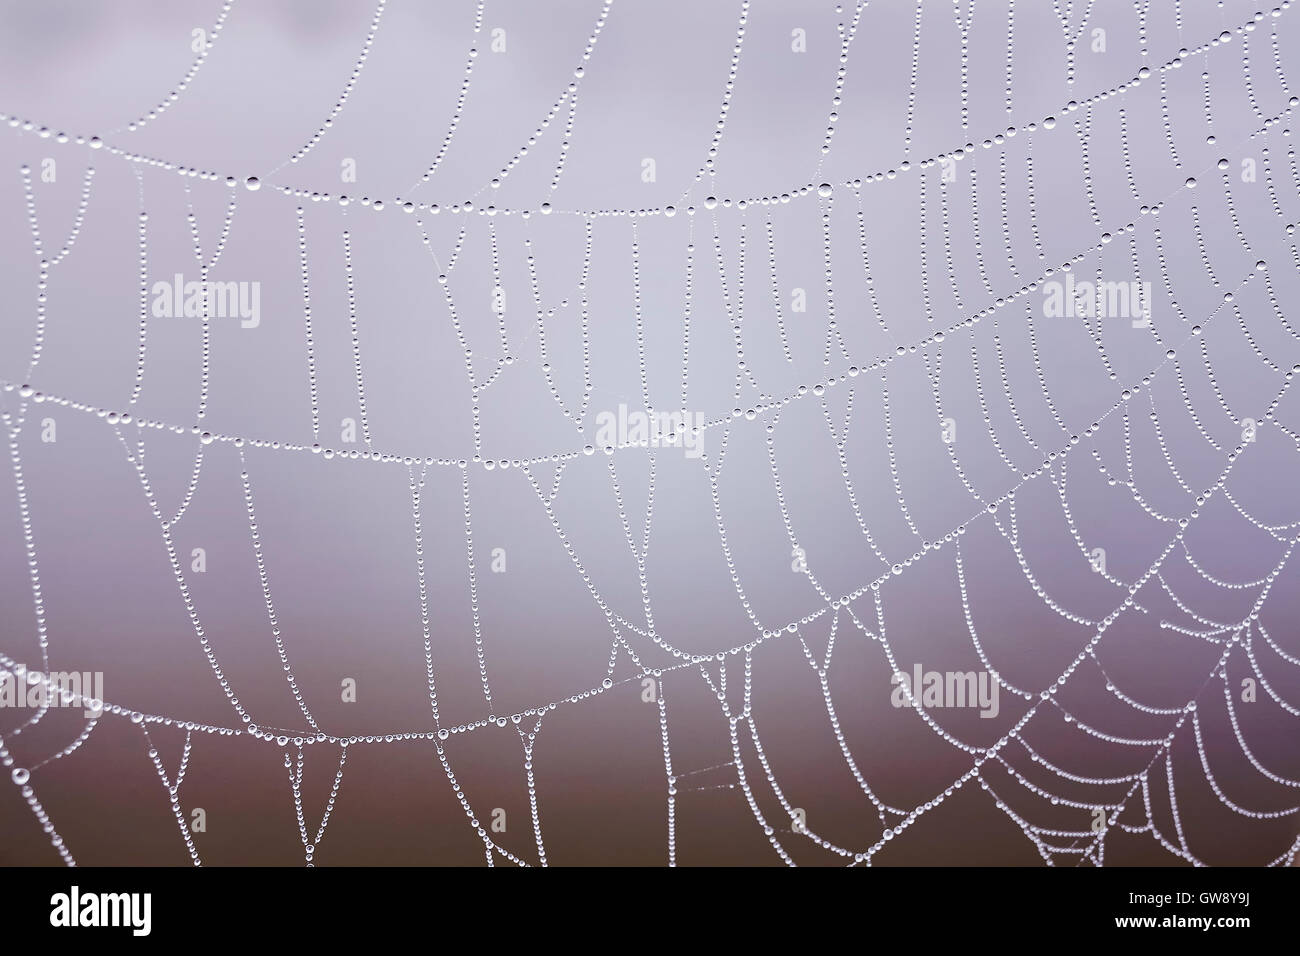 Vintage toned cobweb with dewdrops close up, shallow depth of field, natural background. - Stock Image